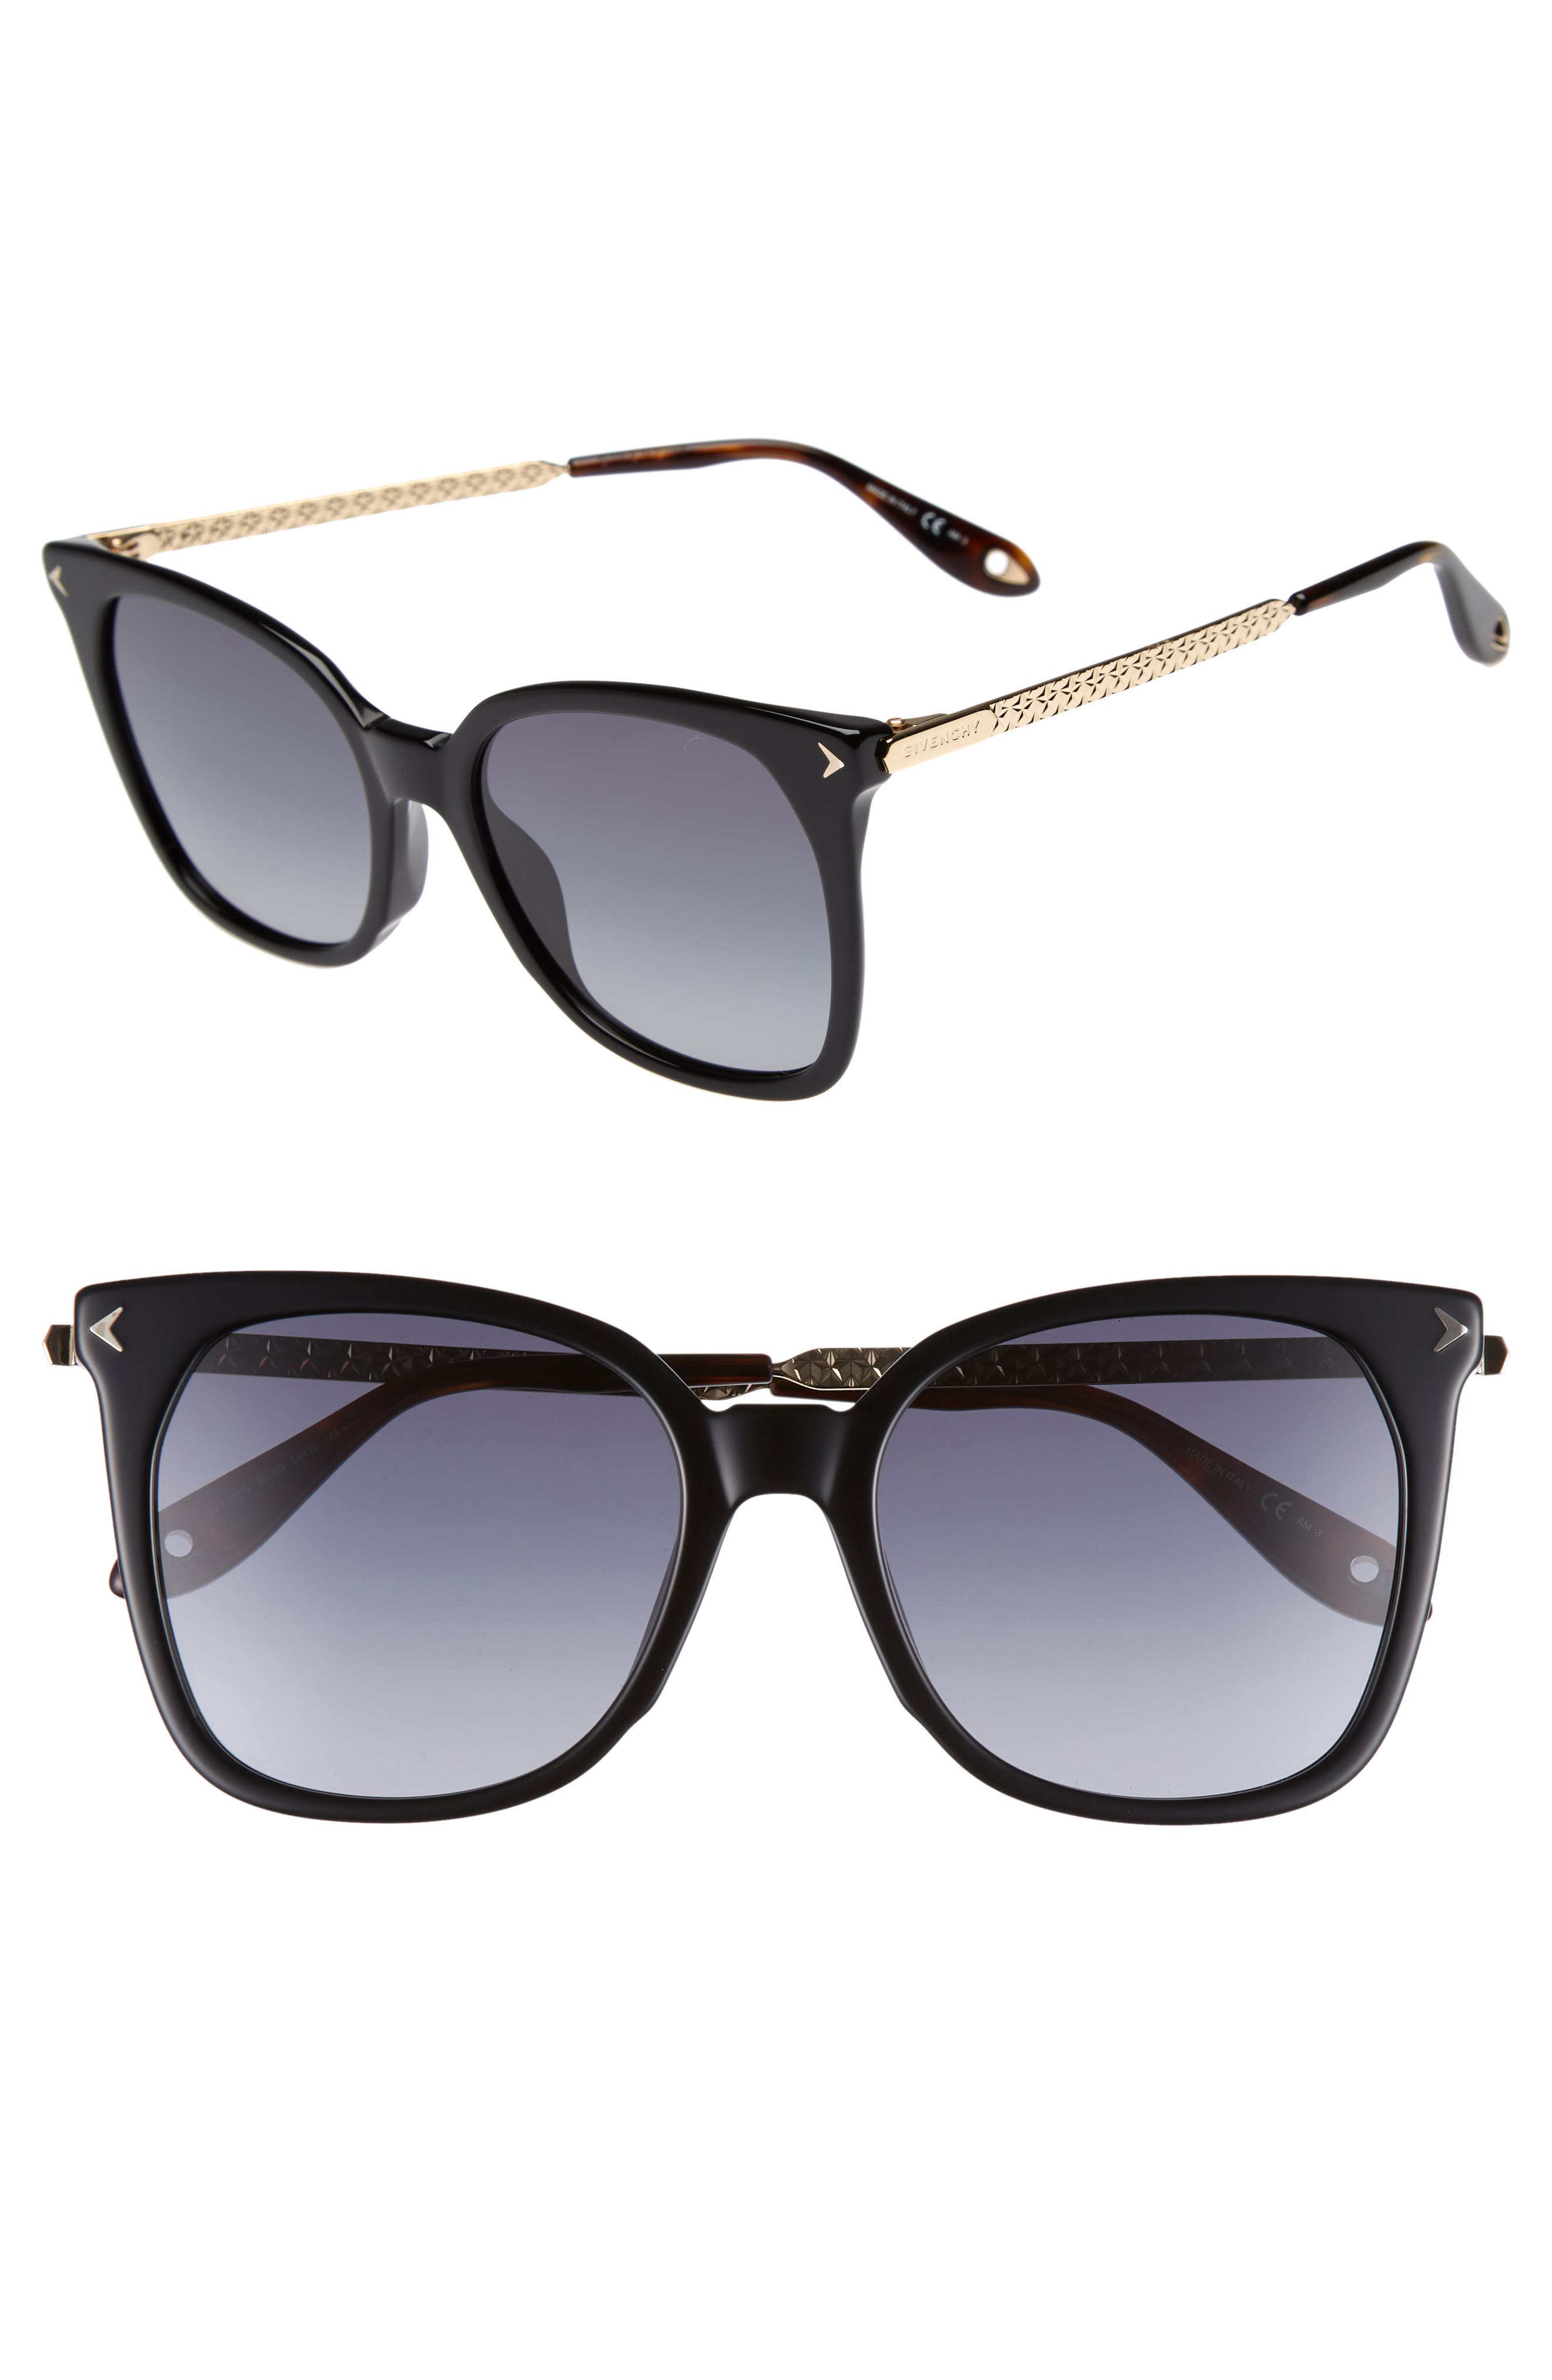 54mm Square Sunglasses,                             Main thumbnail 1, color,                             BLACK